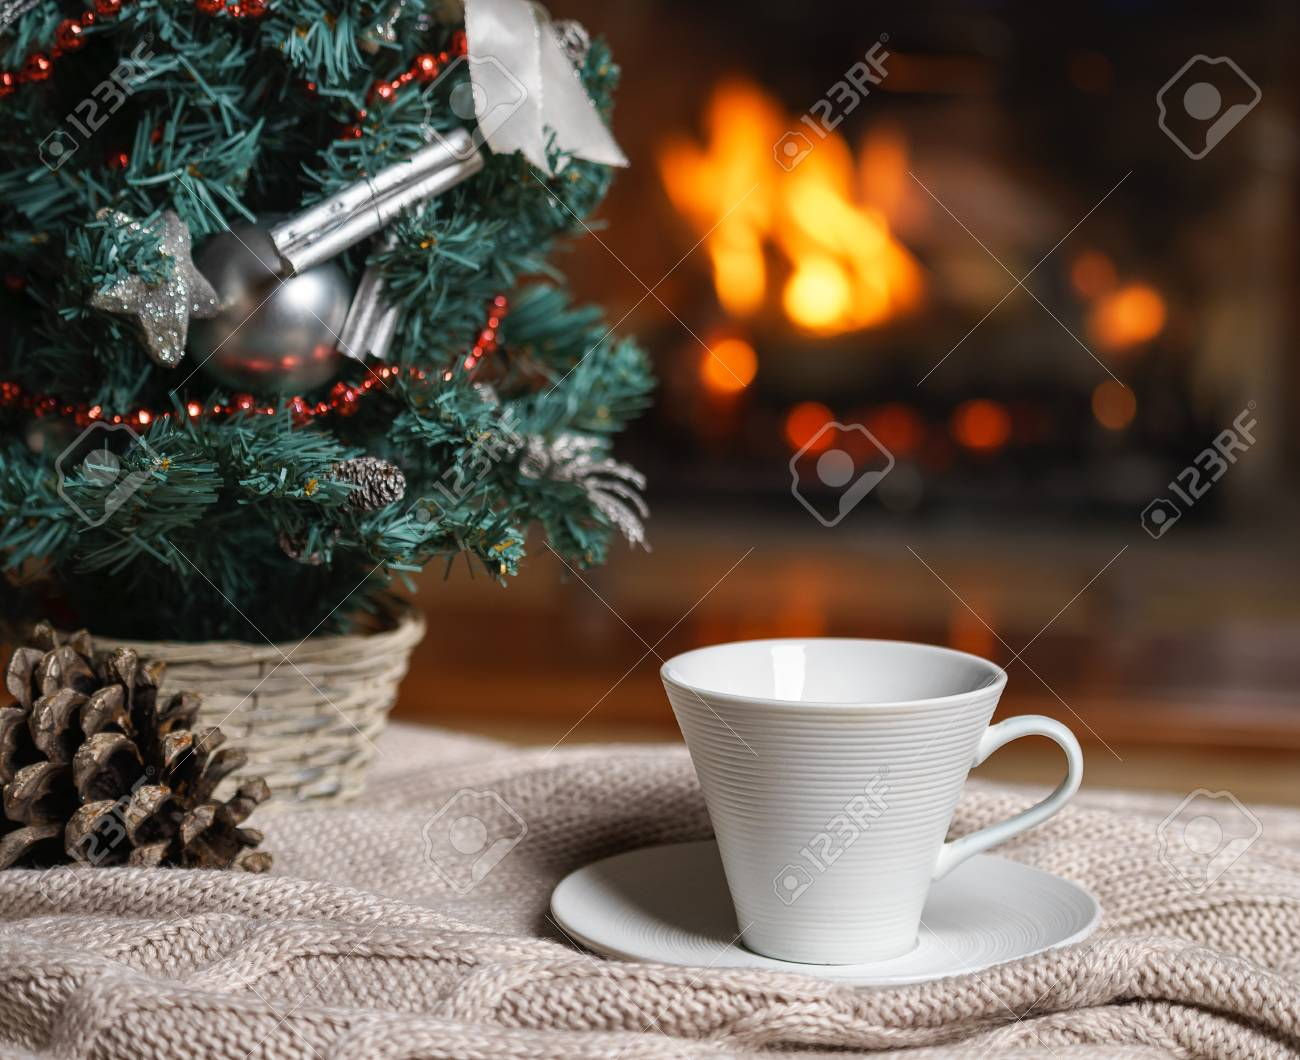 new year winter concept cup of tea or coffee woolen knitted things plaid and christmas decorations near cozy fireplace